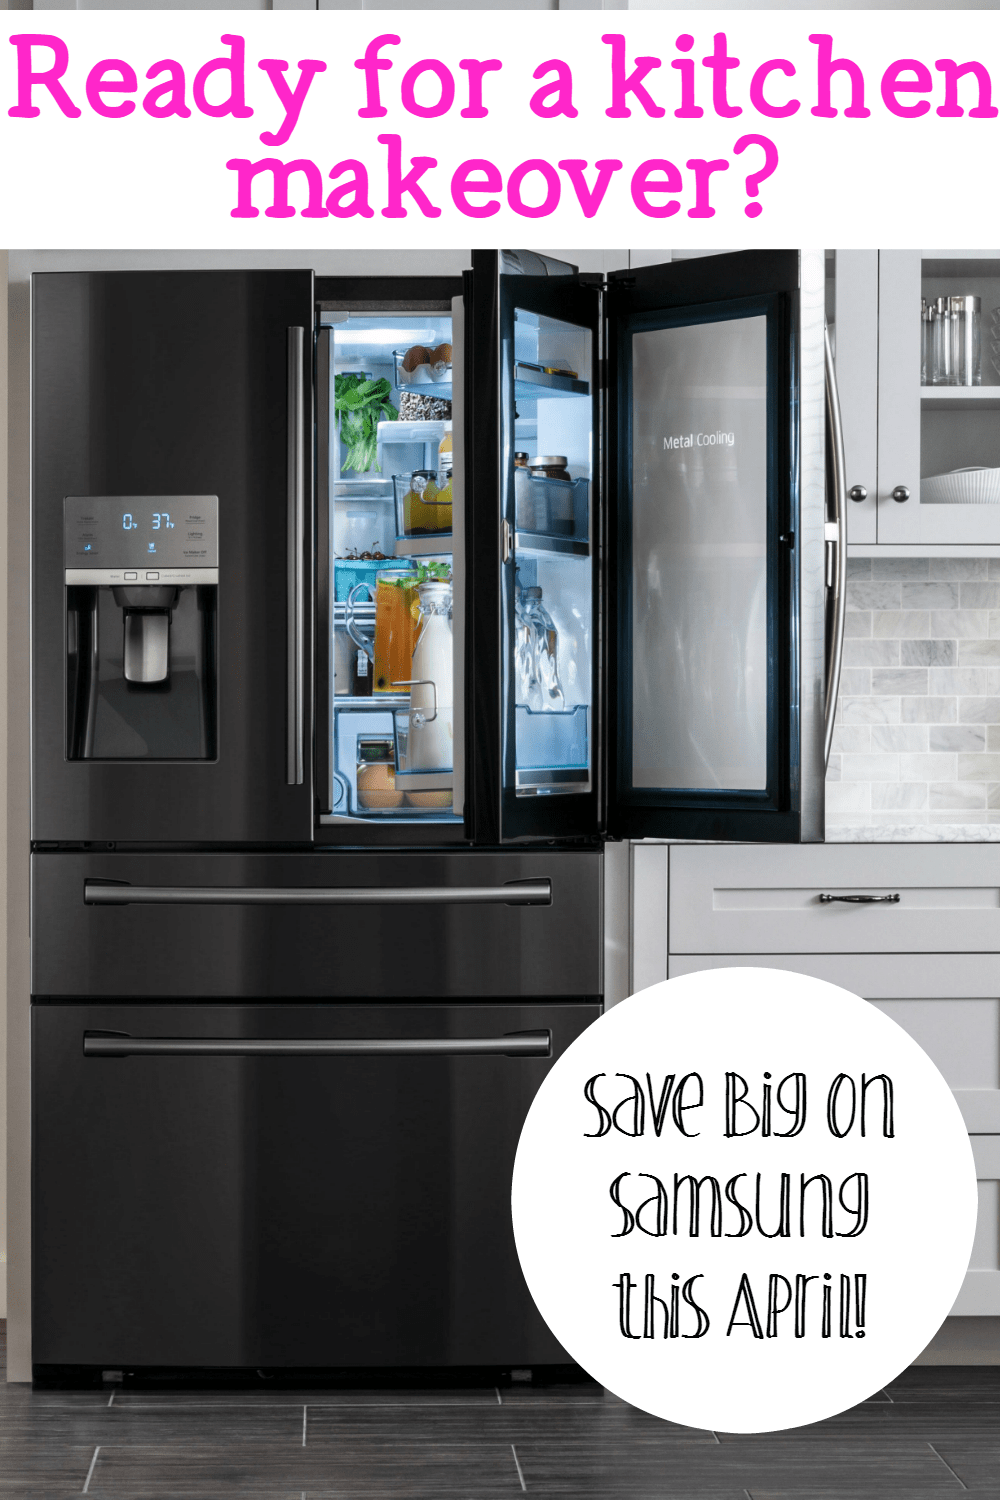 Ready for a Kitchen Makeover? Save on Samsung at Best Buy this April!